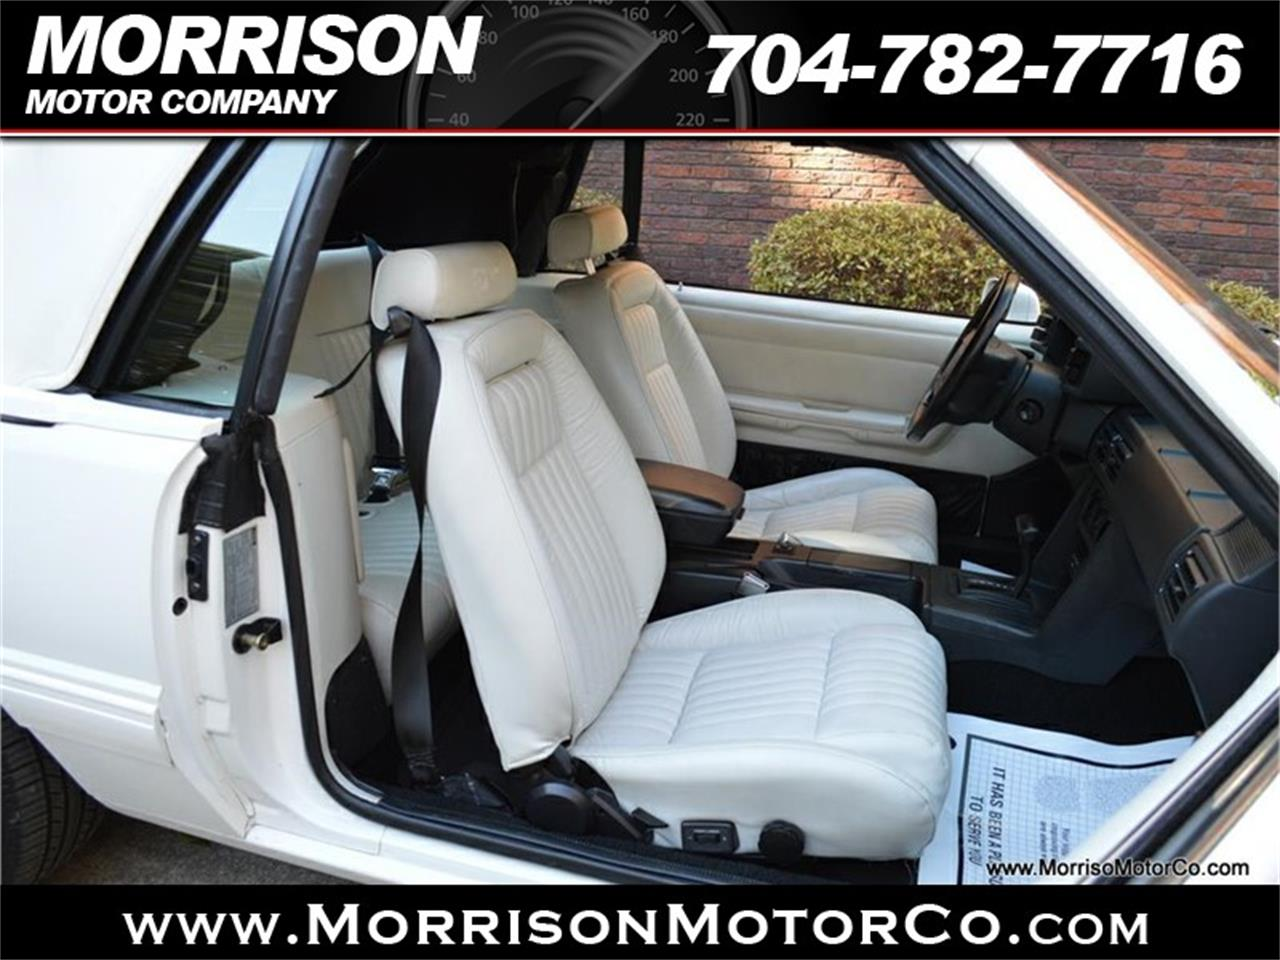 1993 Ford Mustang (CC-1258720) for sale in Concord, North Carolina